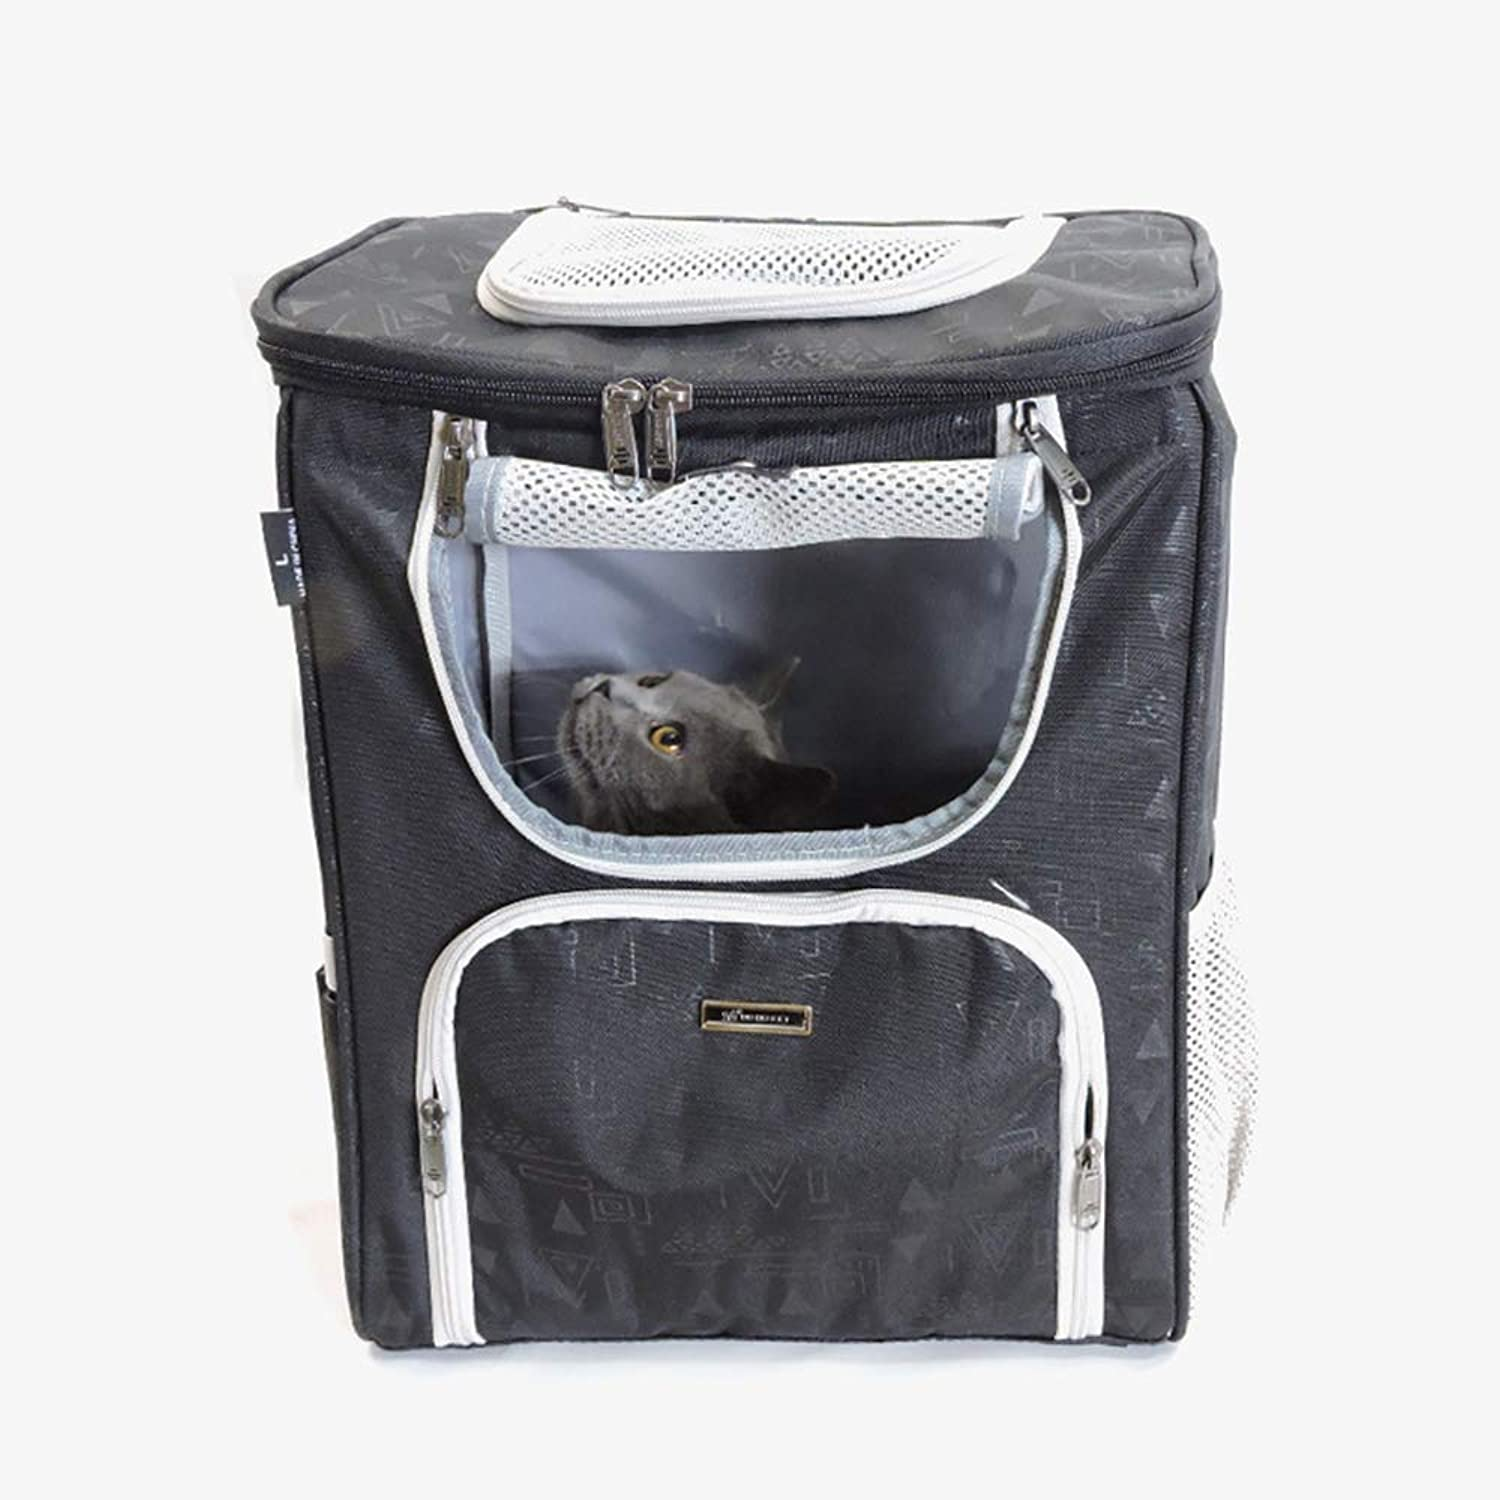 MOIMK Pet Carrier Backpack Dog Travel Bag Top Opening Mesh SoftSided Strap Dog Cat Carrier Foldable Outdoor Travel Double Shoulder Bags,Black